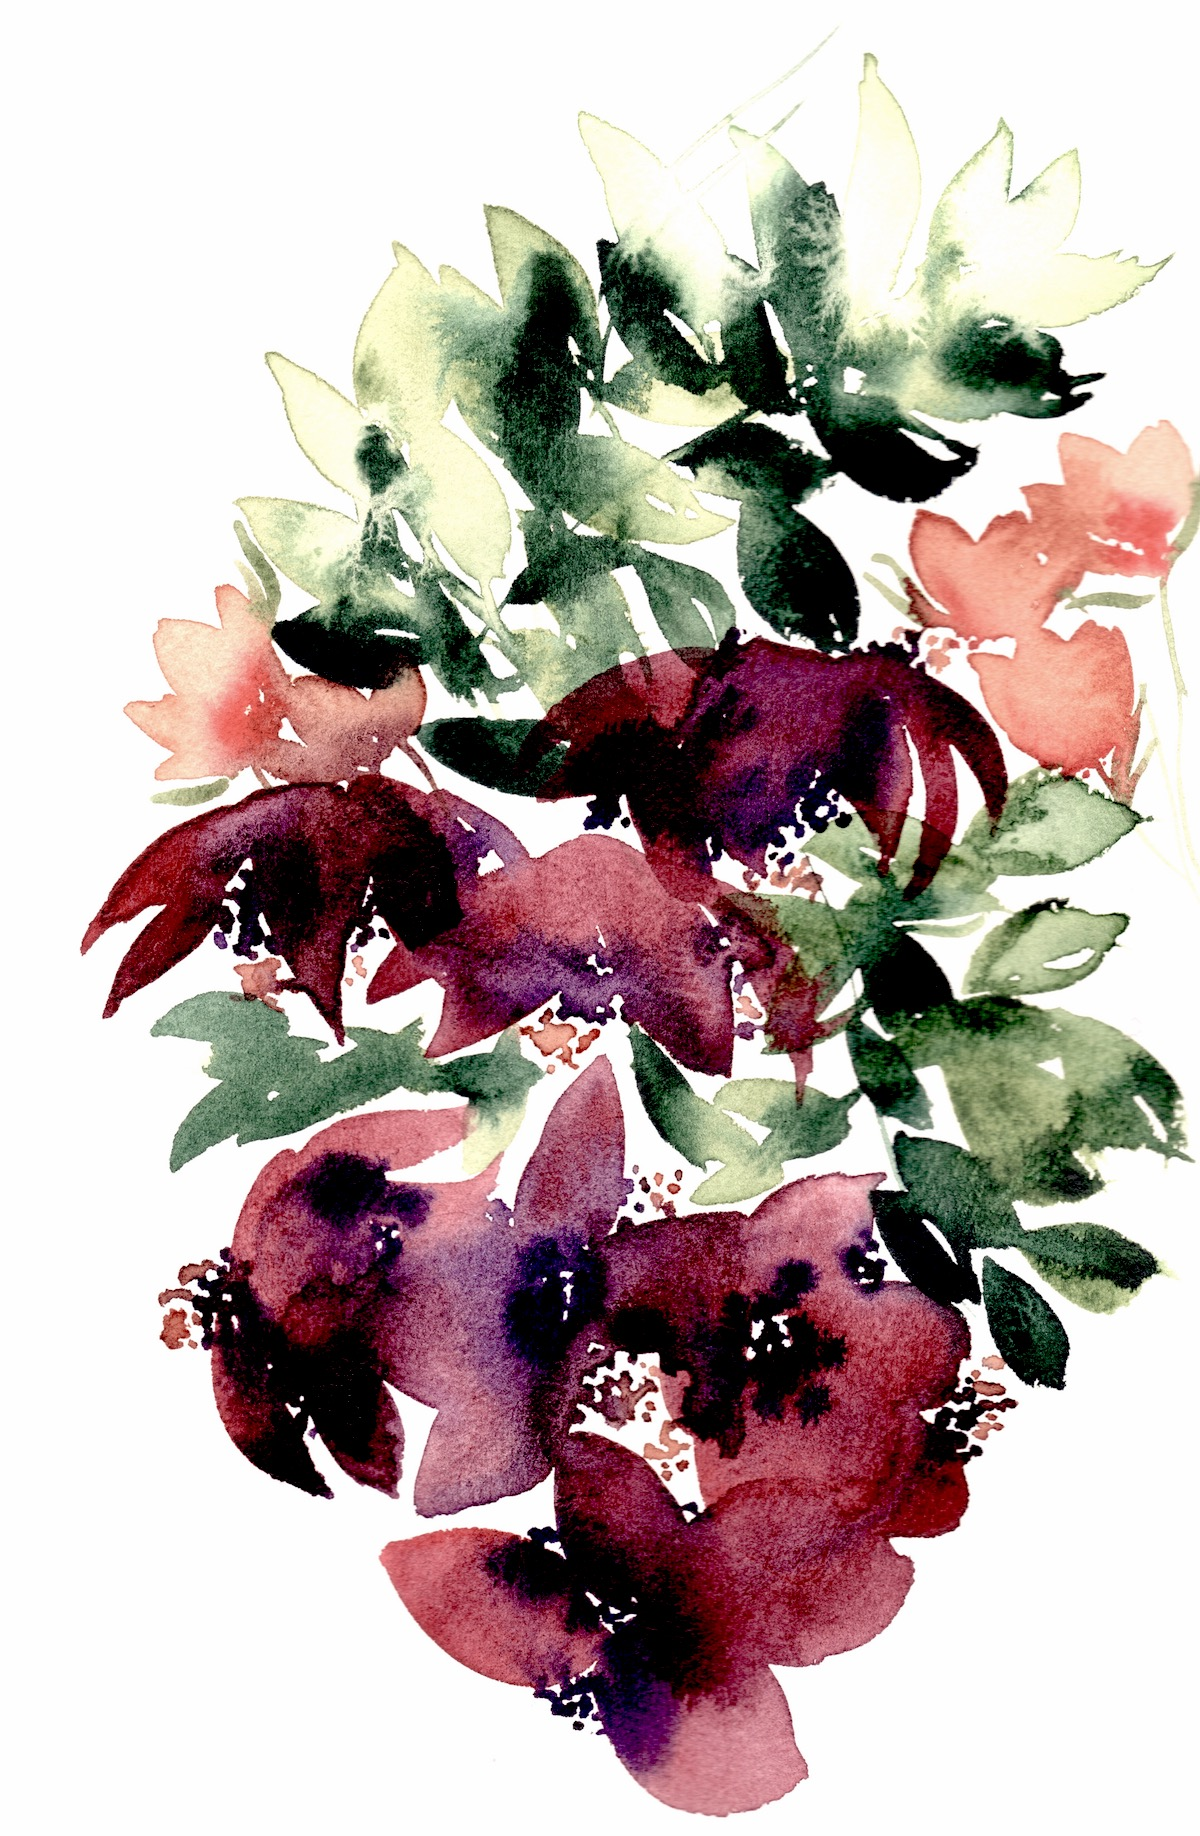 Abstract Floral Illustrations with aubergine plum orchids copy